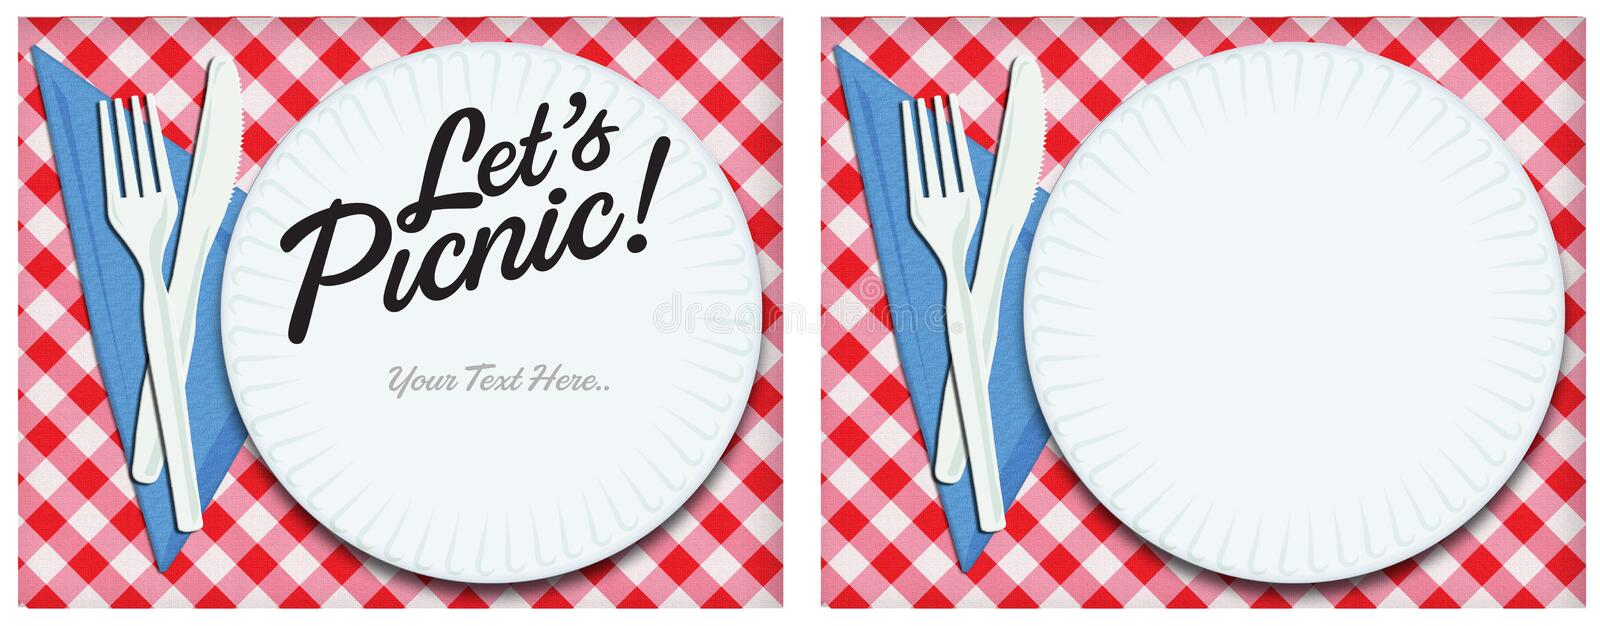 Picnic Invitation Art Stock Illustration Illustration Of Tablecloth